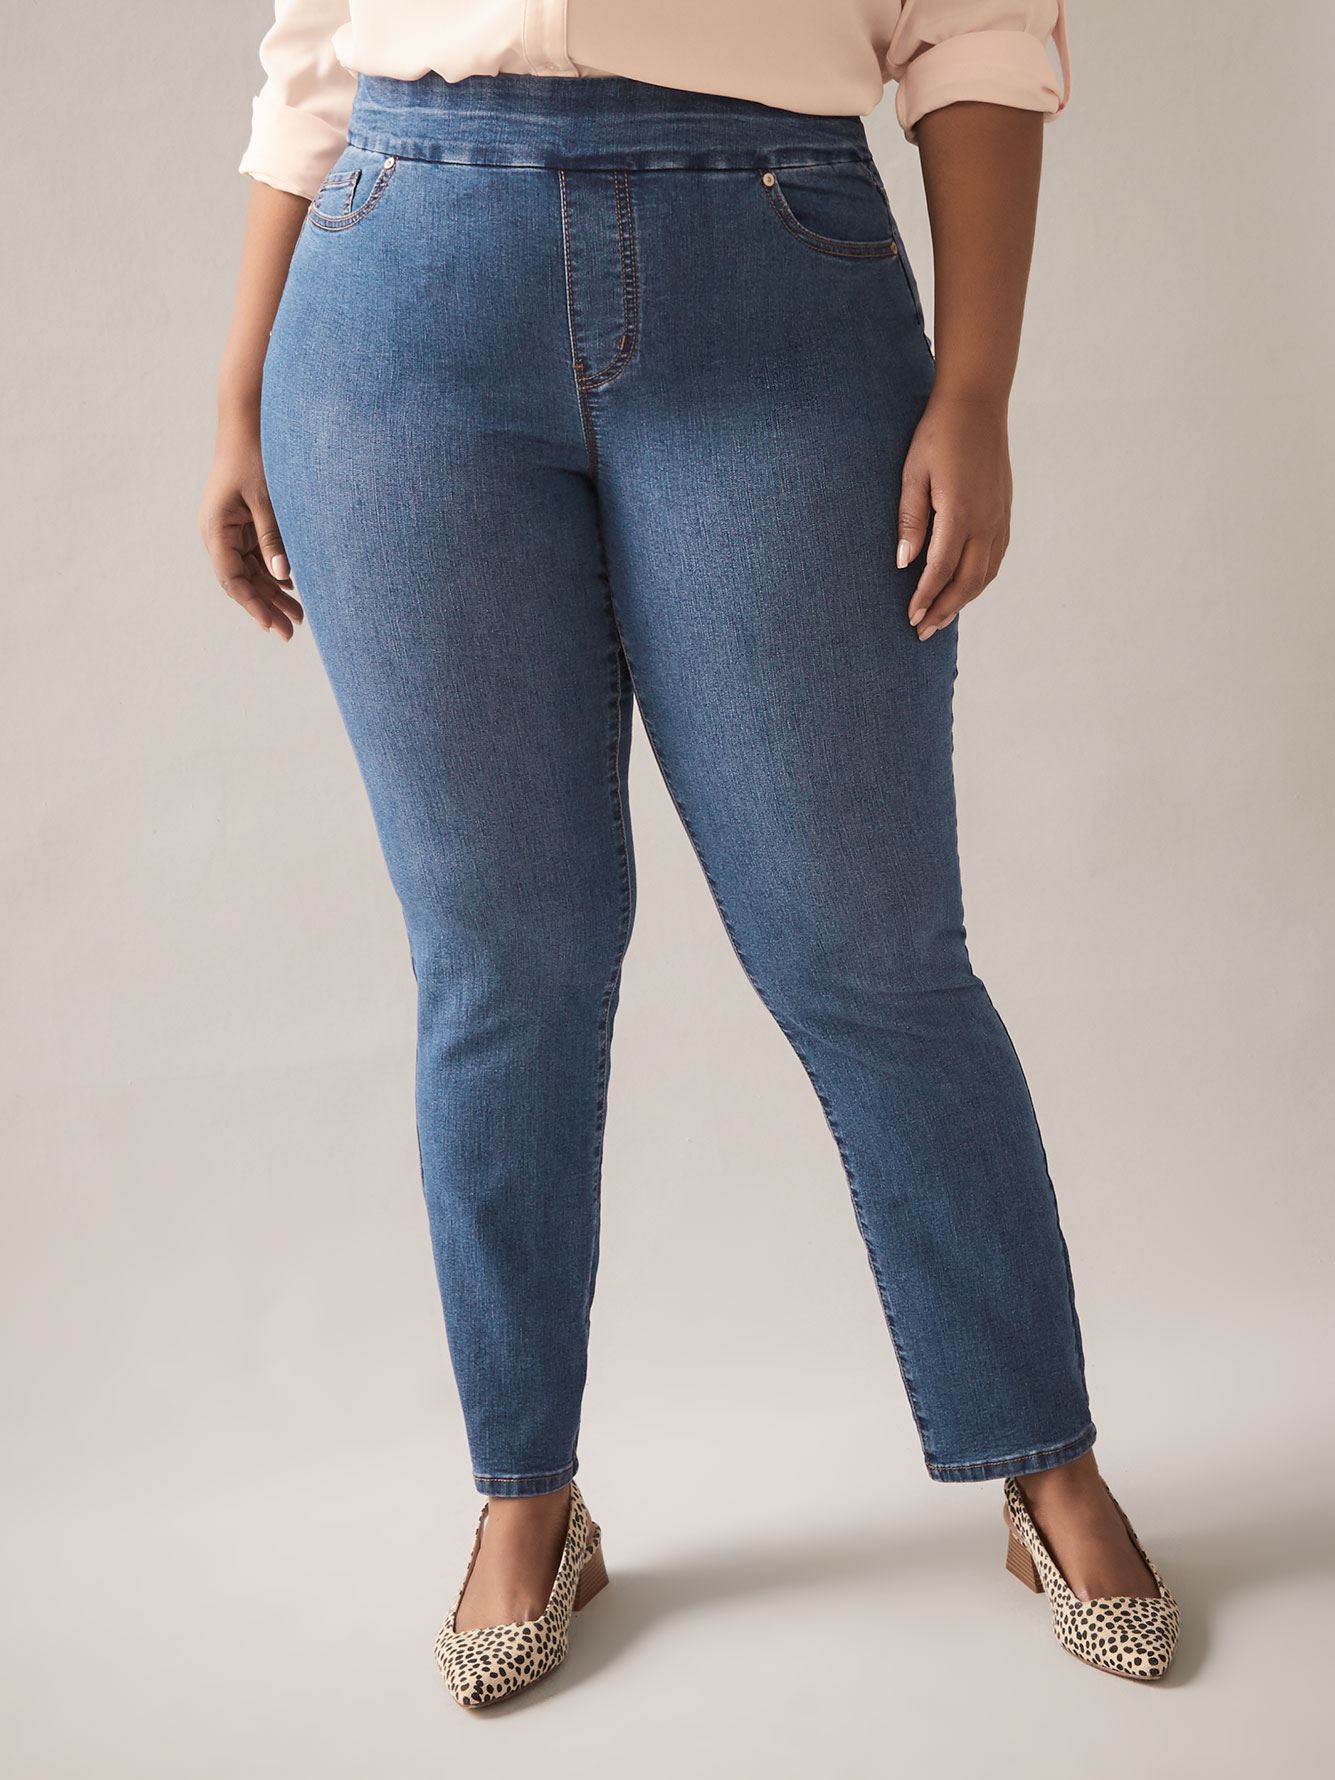 Petite, Savvy Fit, Straight Leg Blue Jeans - In Every Story